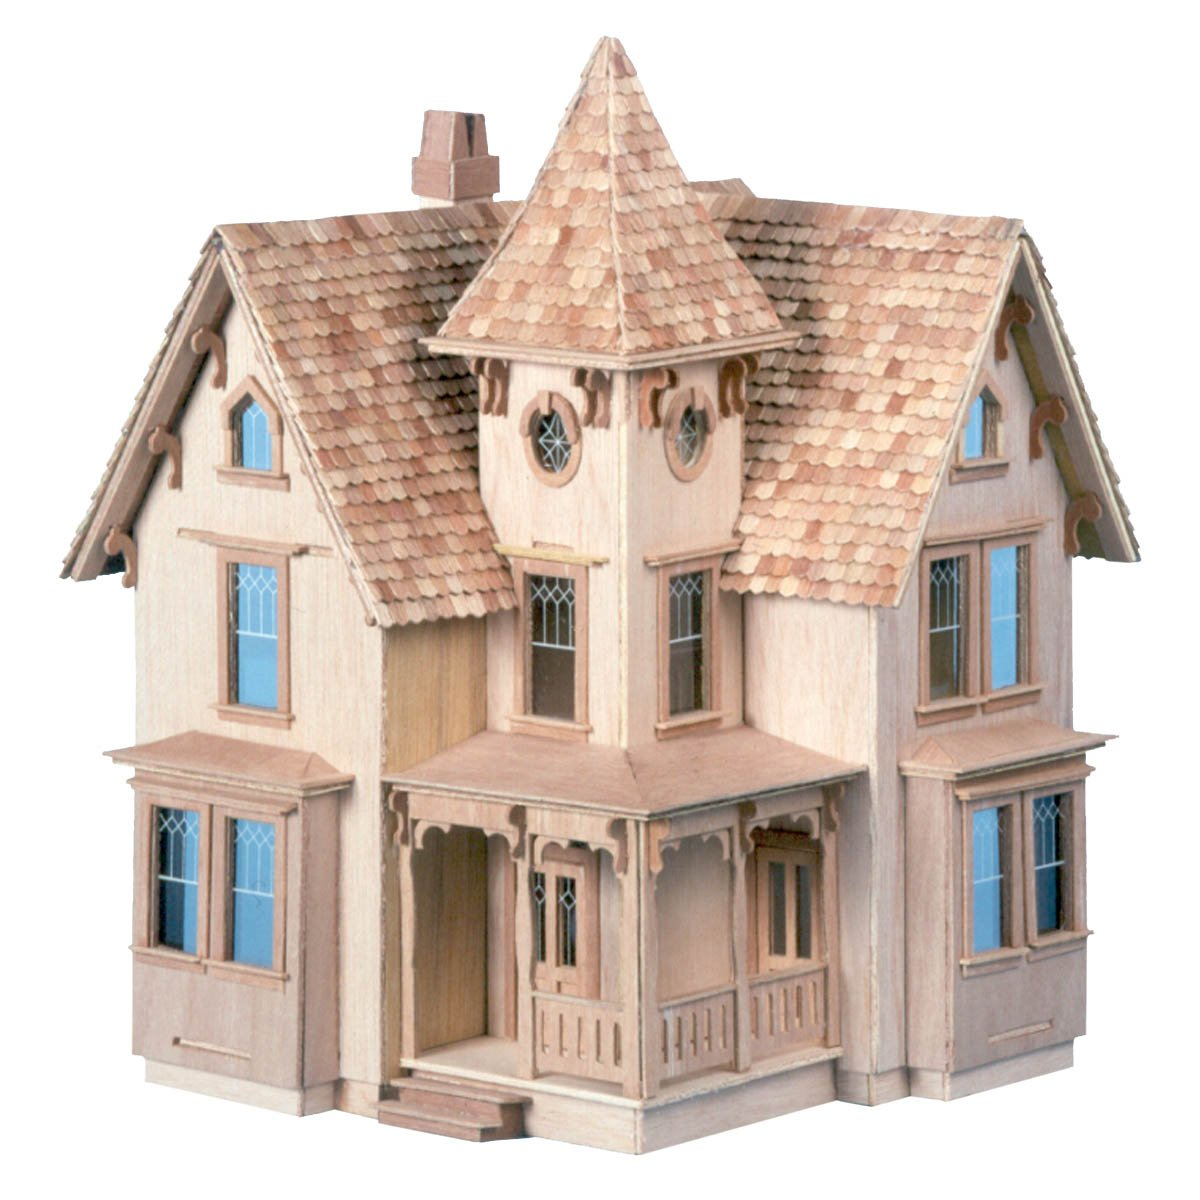 Skarla 39 s variety shop deals 1 24 scale victorian for How to build a victorian house